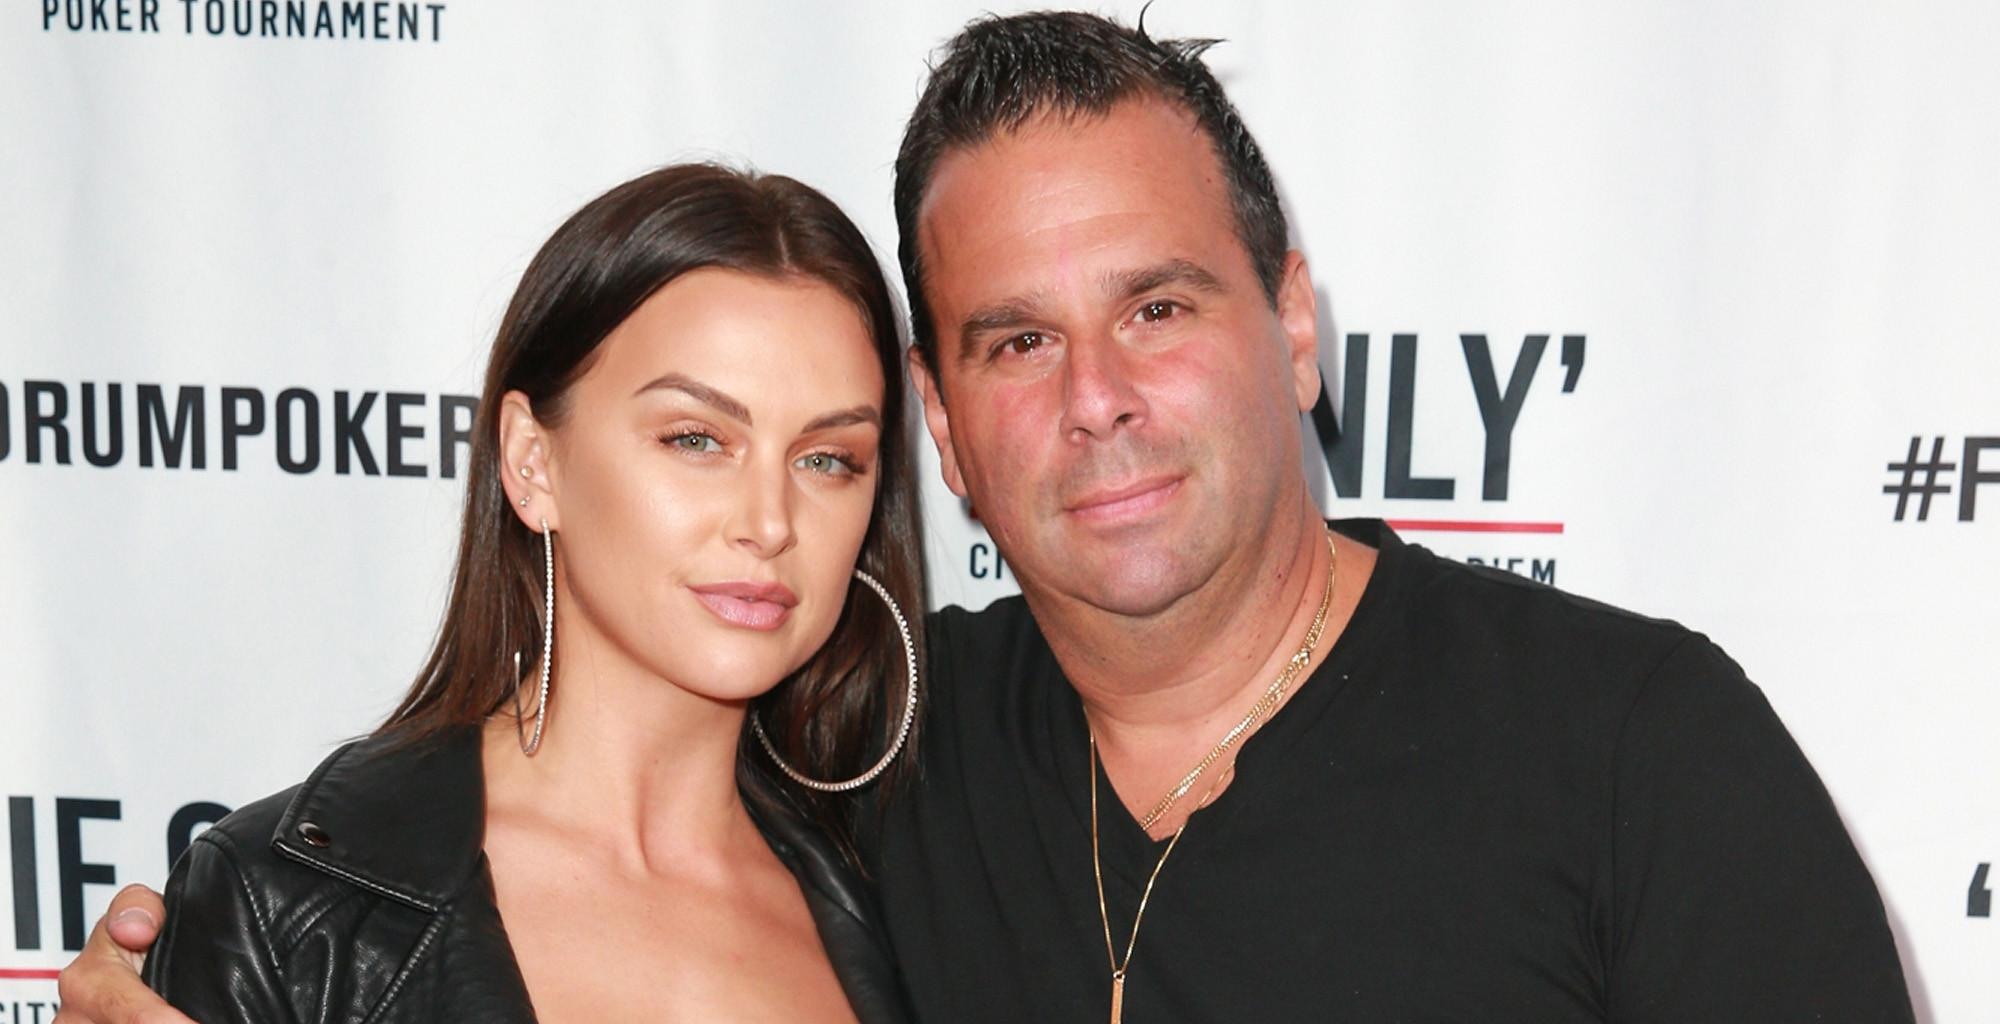 Lala Kent And Randall Emmett Are Trying For A Baby Due To Wedding Being Pushed Back Because Of COVID